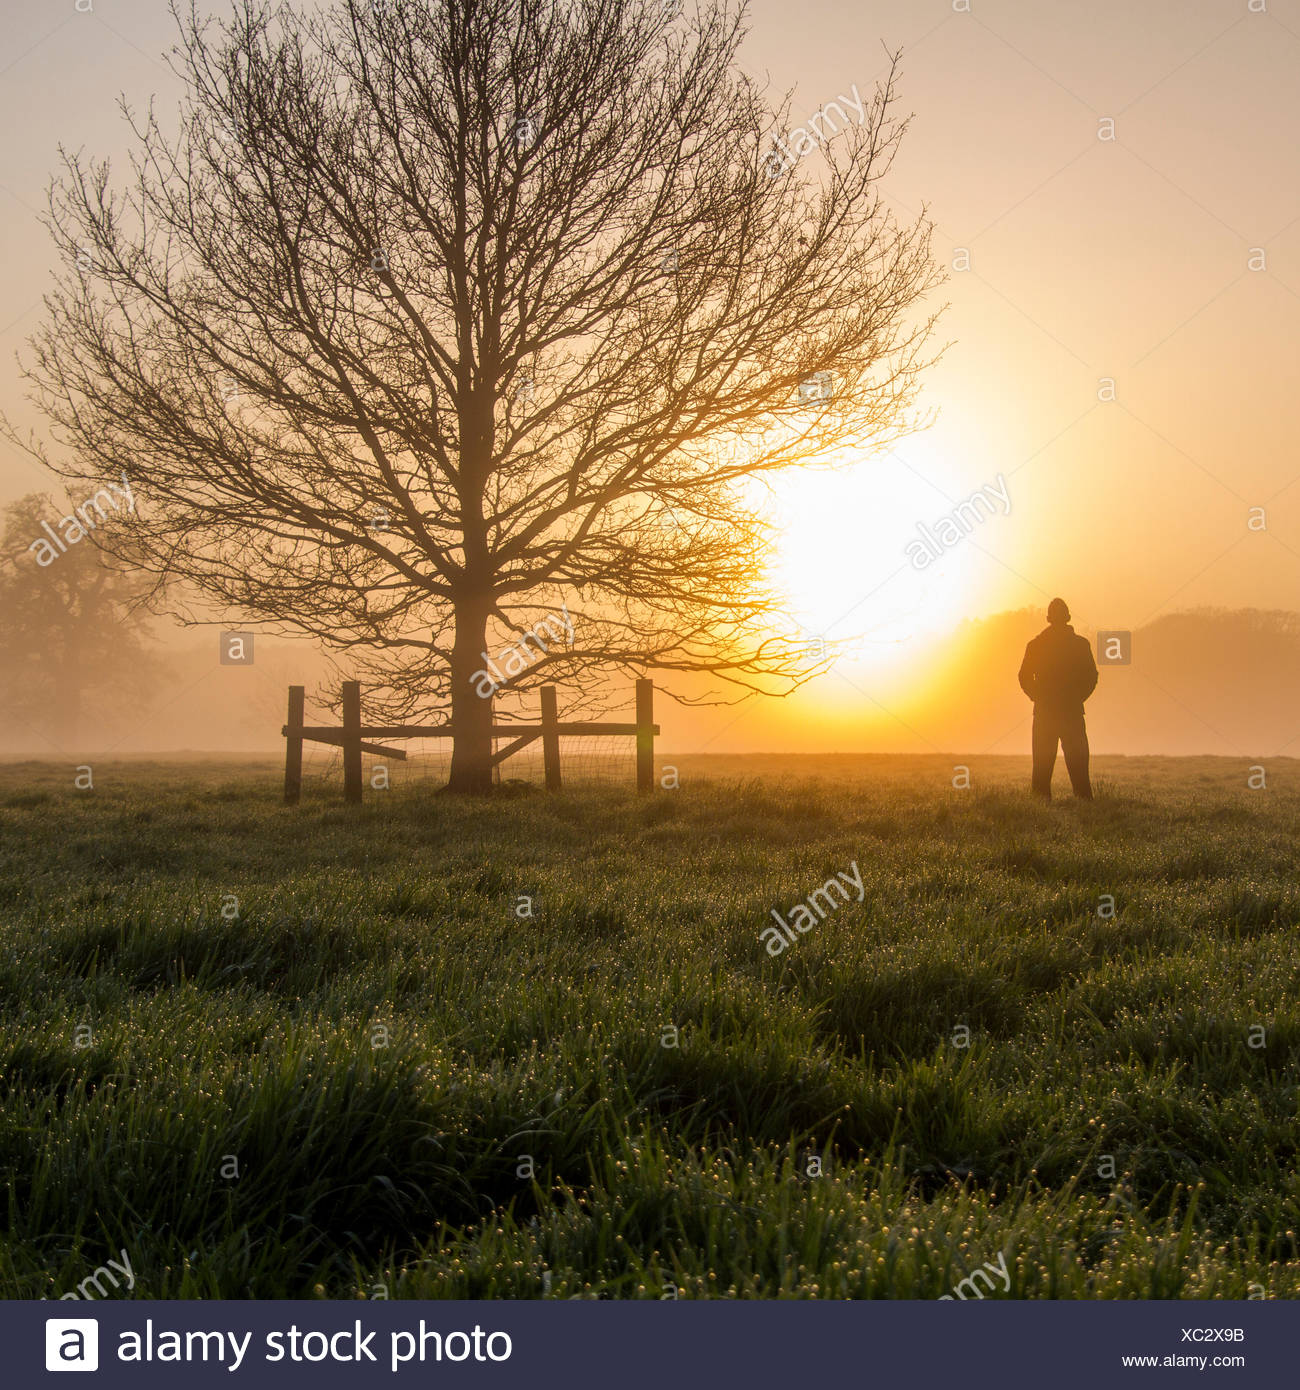 United Kingdom, England, Berkshire, Man watching sunrise - Stock Image